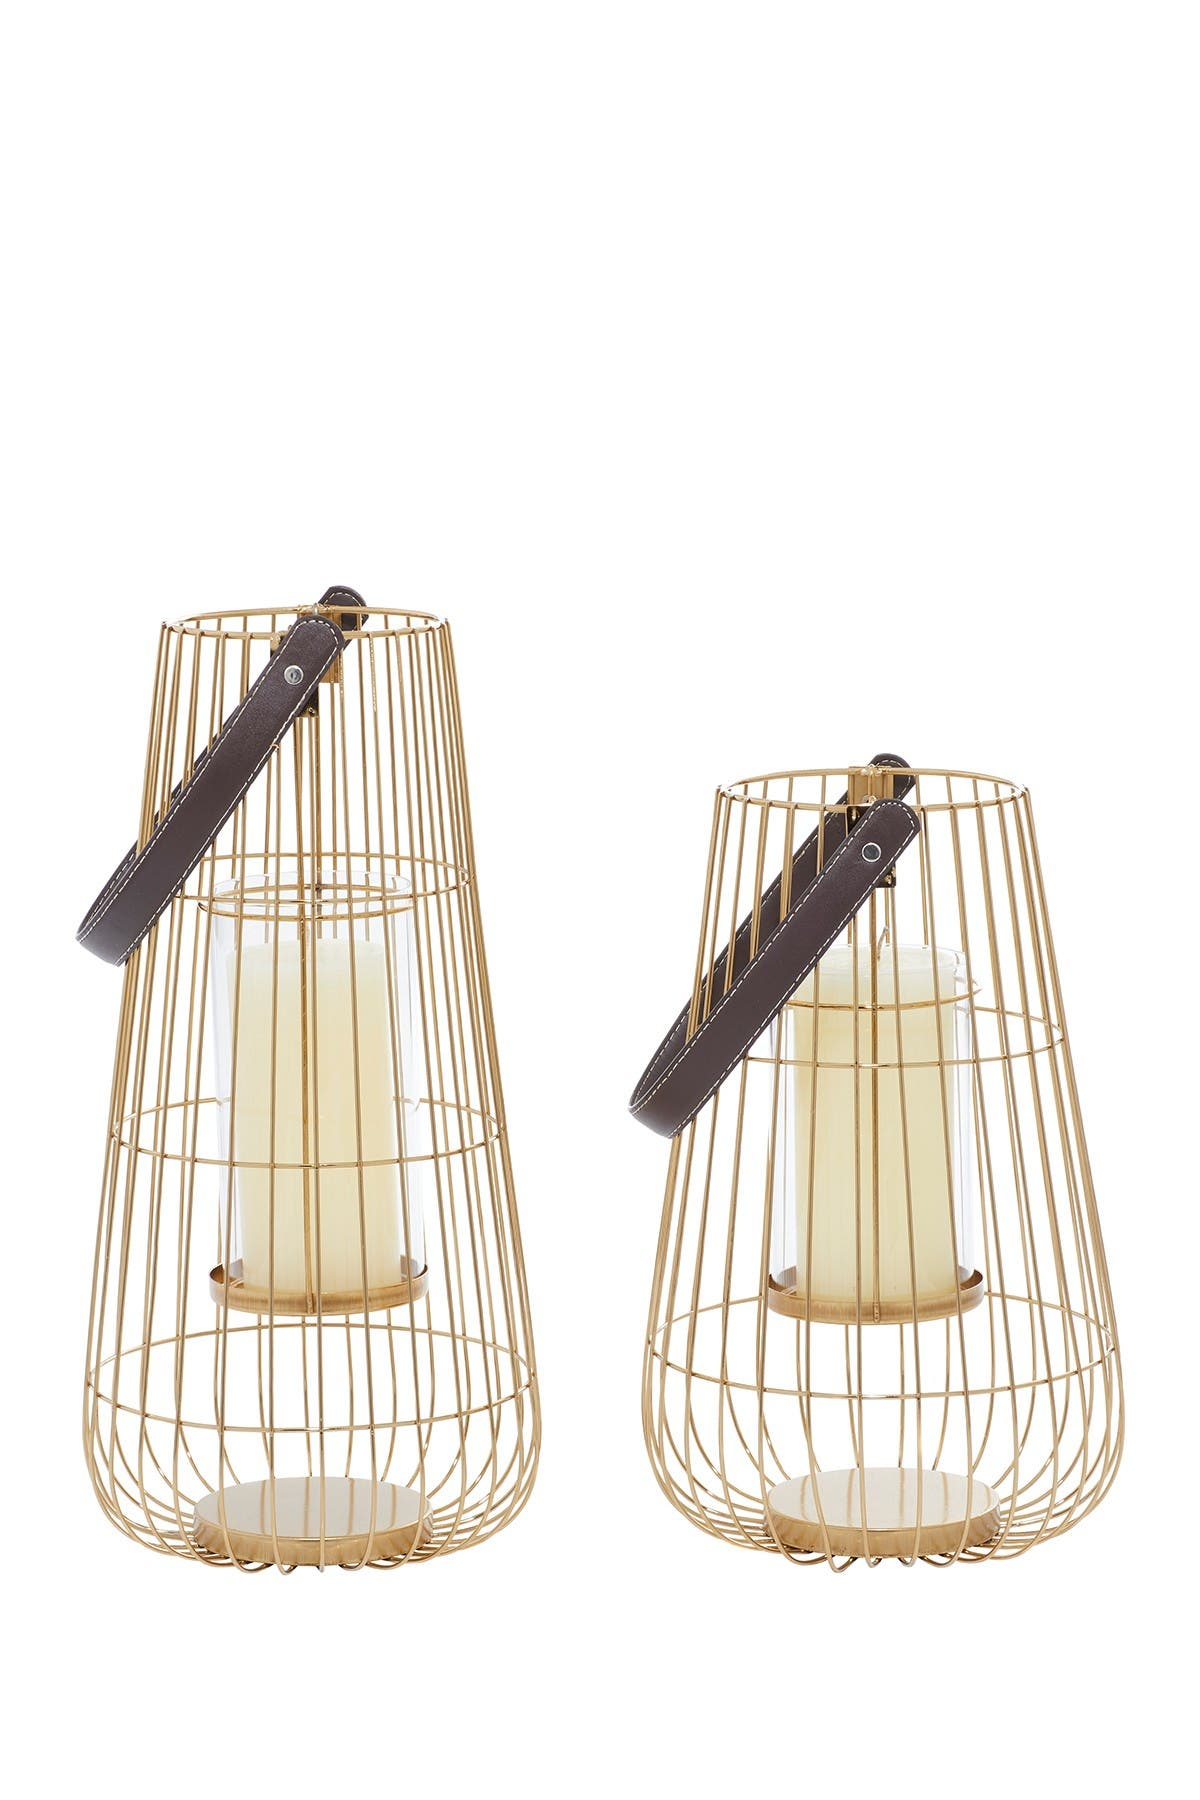 Image of Willow Row Gold Metal Contemporary Lantern 2-Piece Set